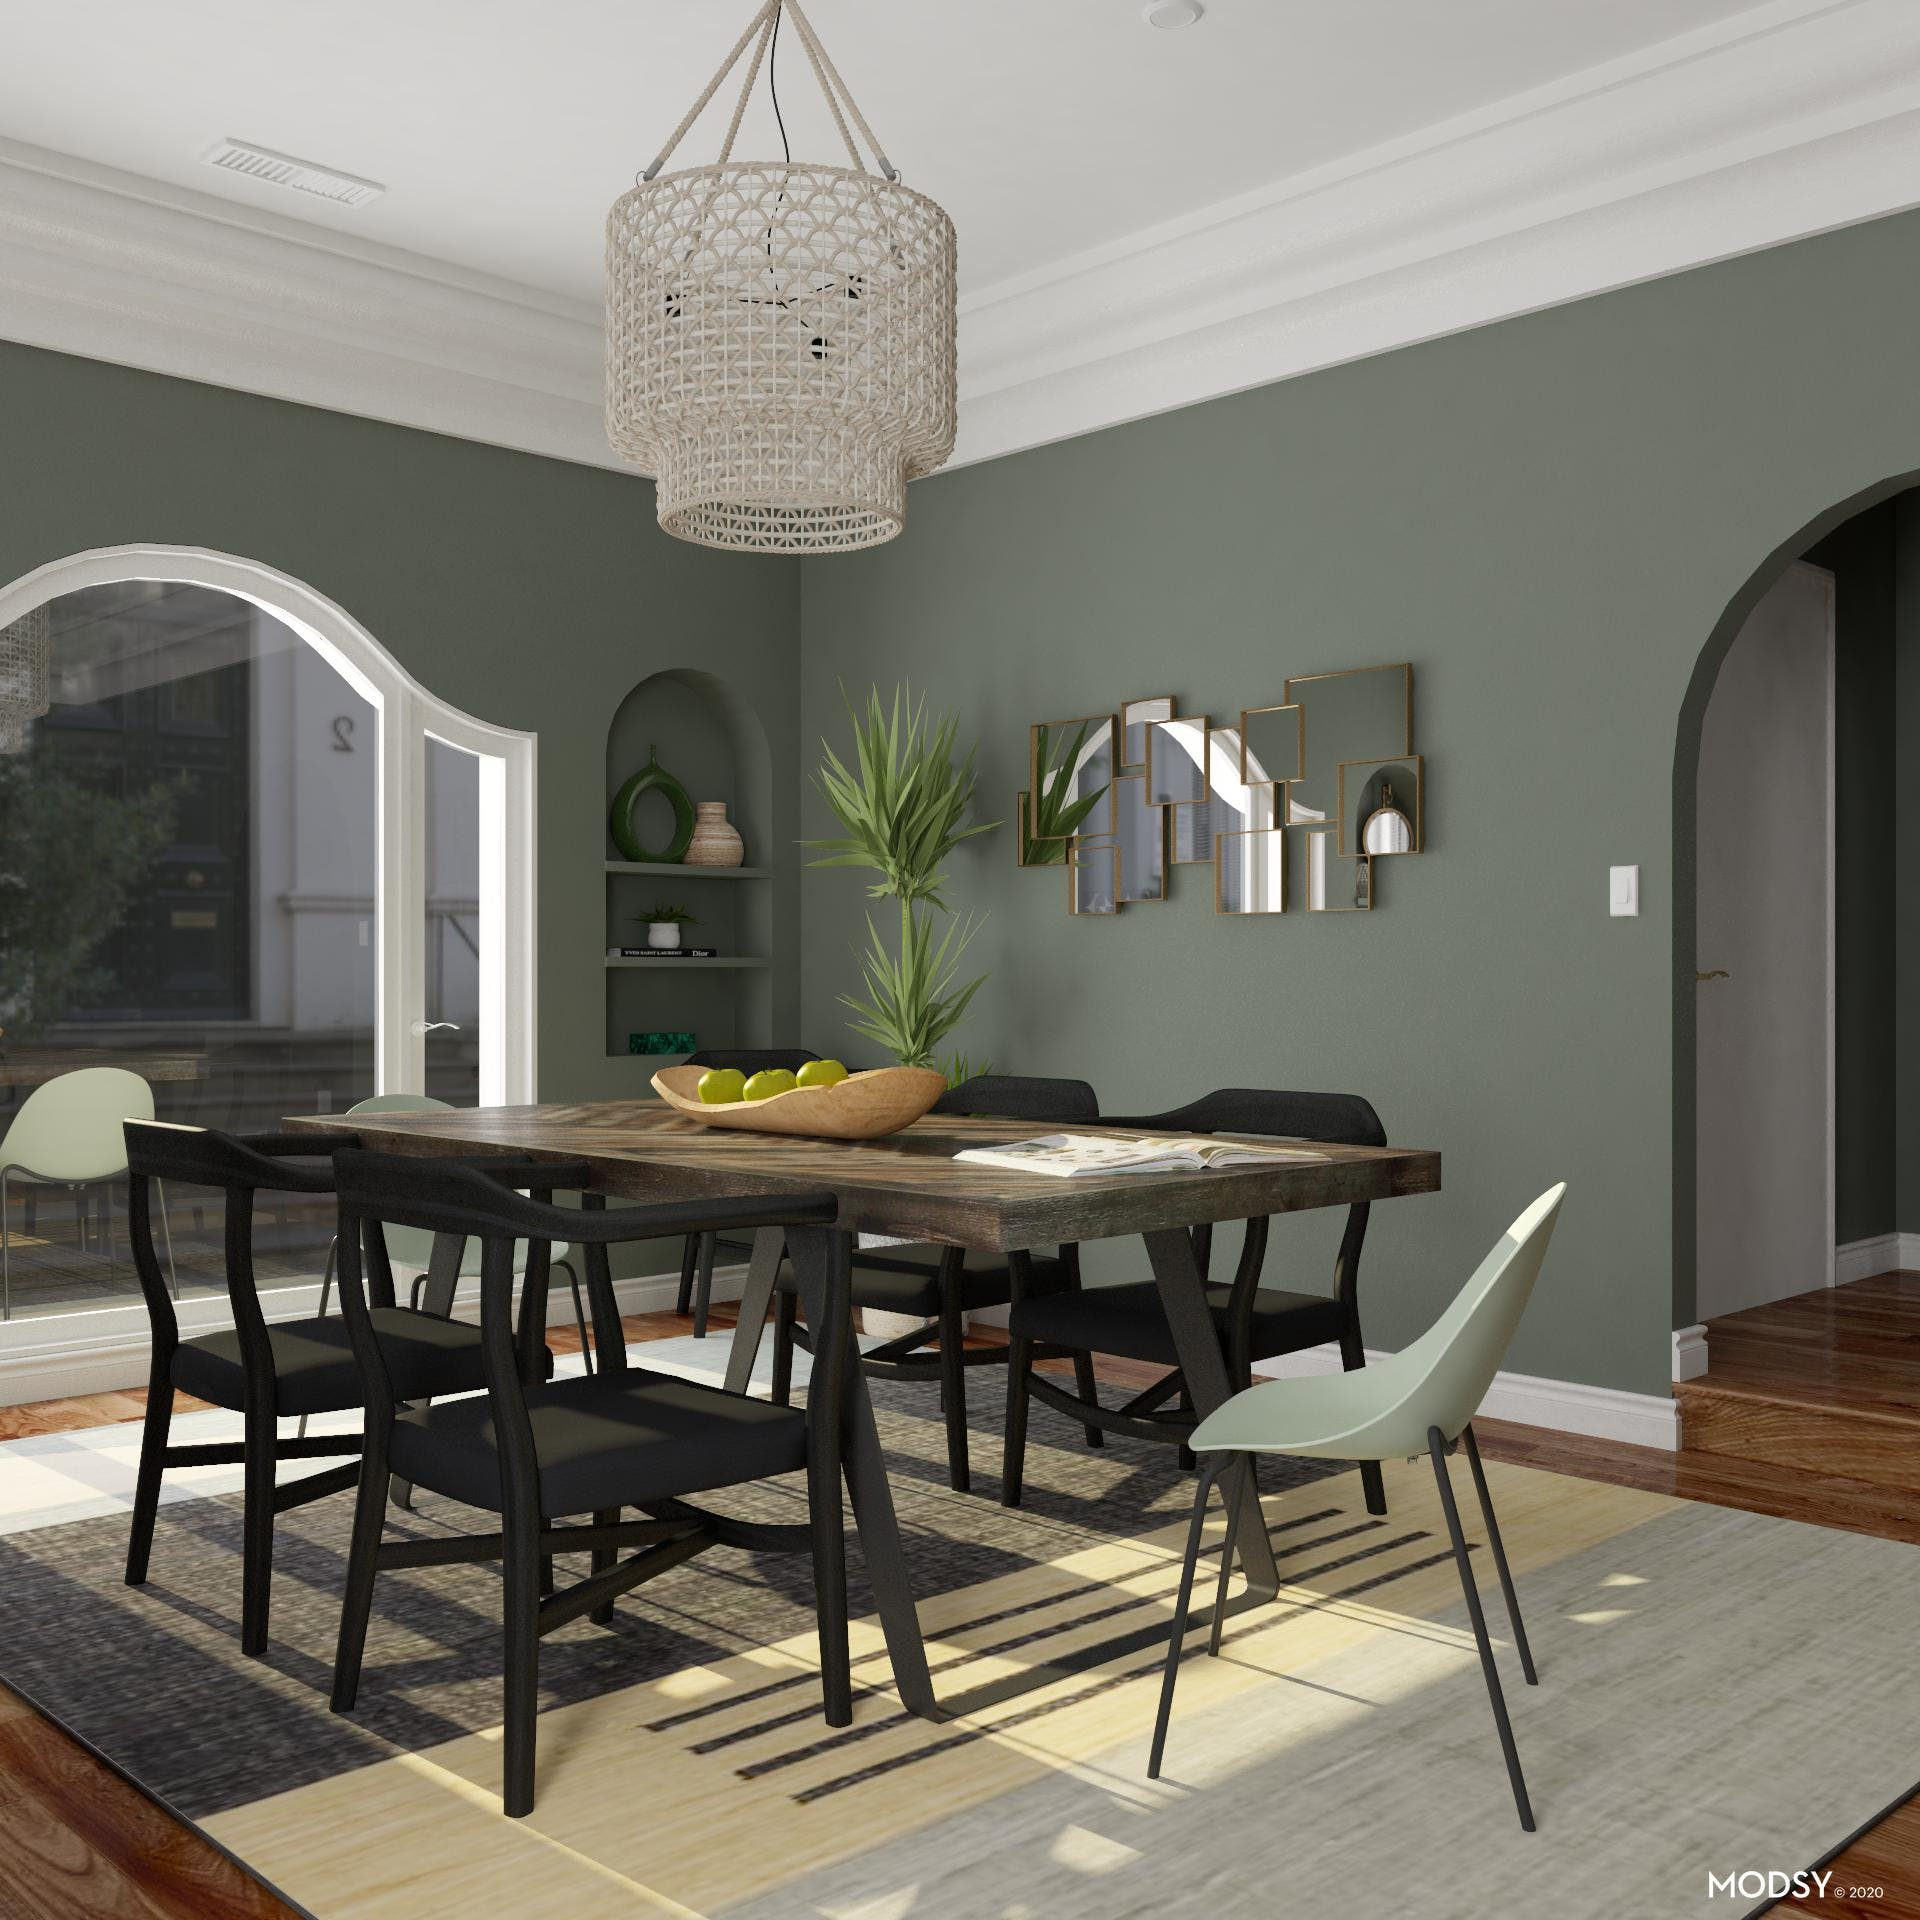 Eclectic Dining Room With Green Hues